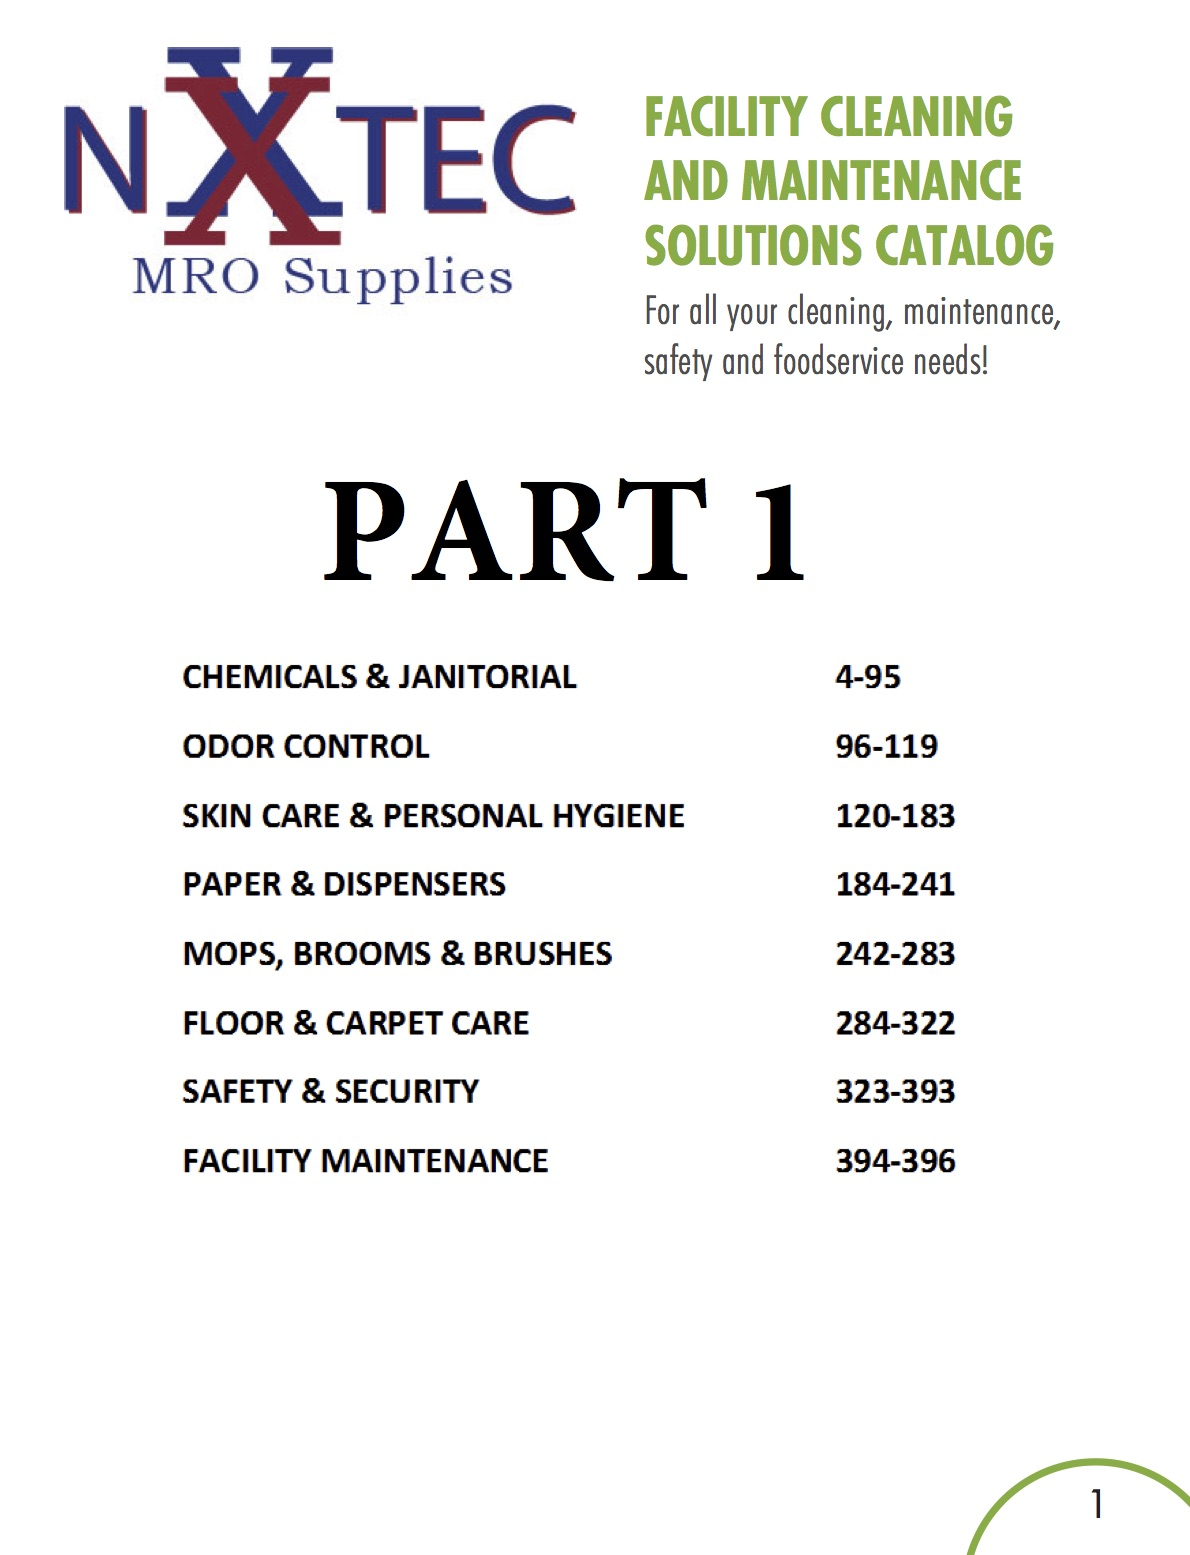 Facility Supply Catalog Part 1